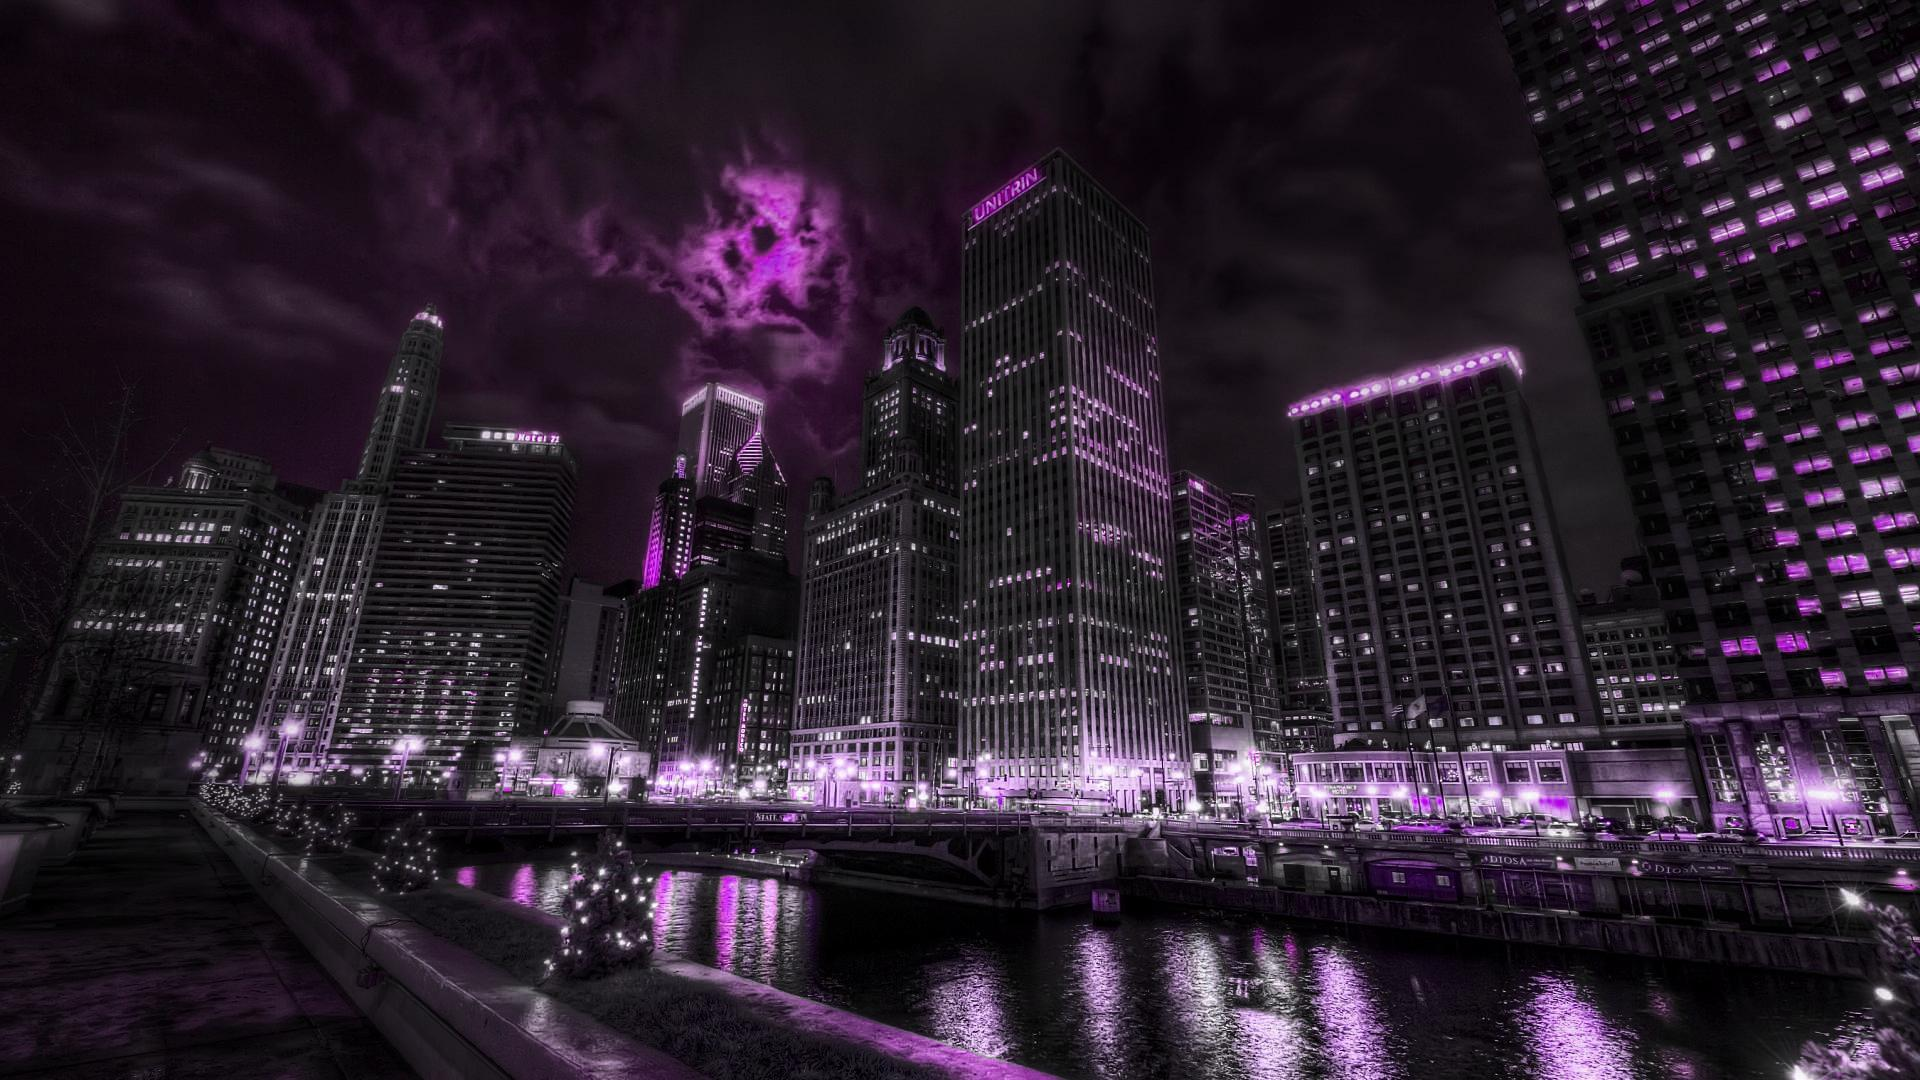 Download wallpaper 1920x1080 saints row the third, city.